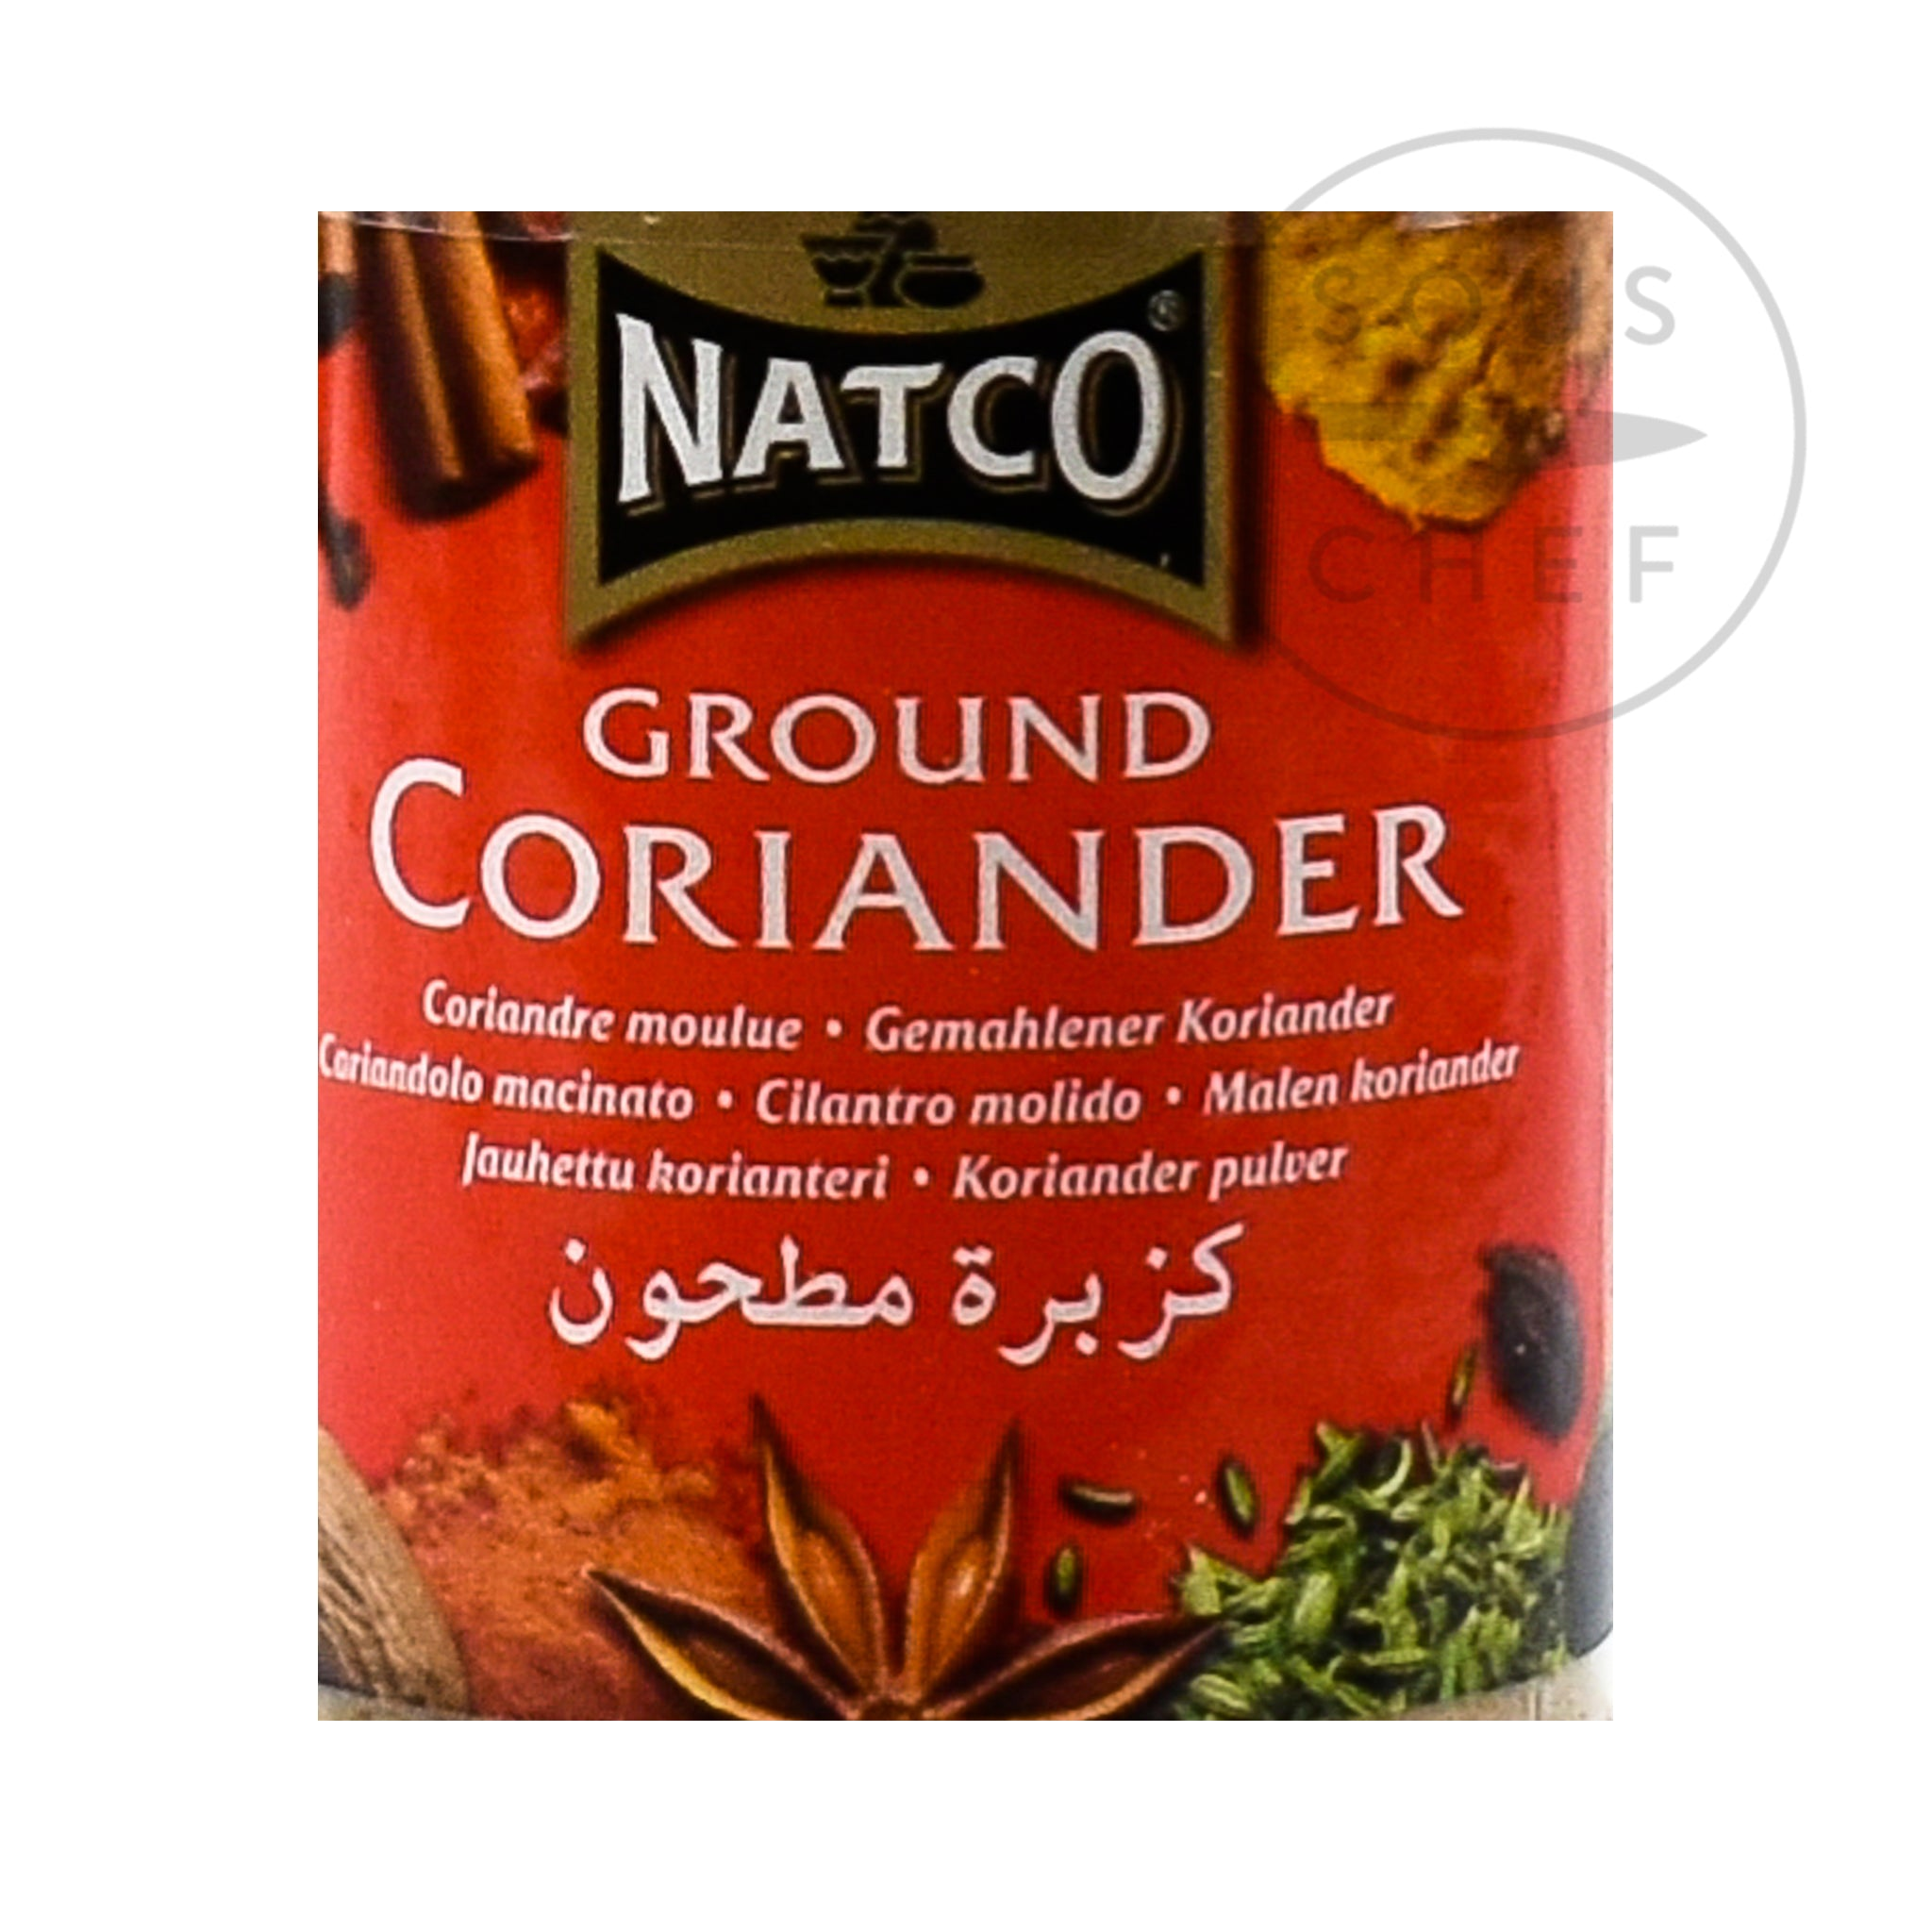 Natco Ground Coriander 70g